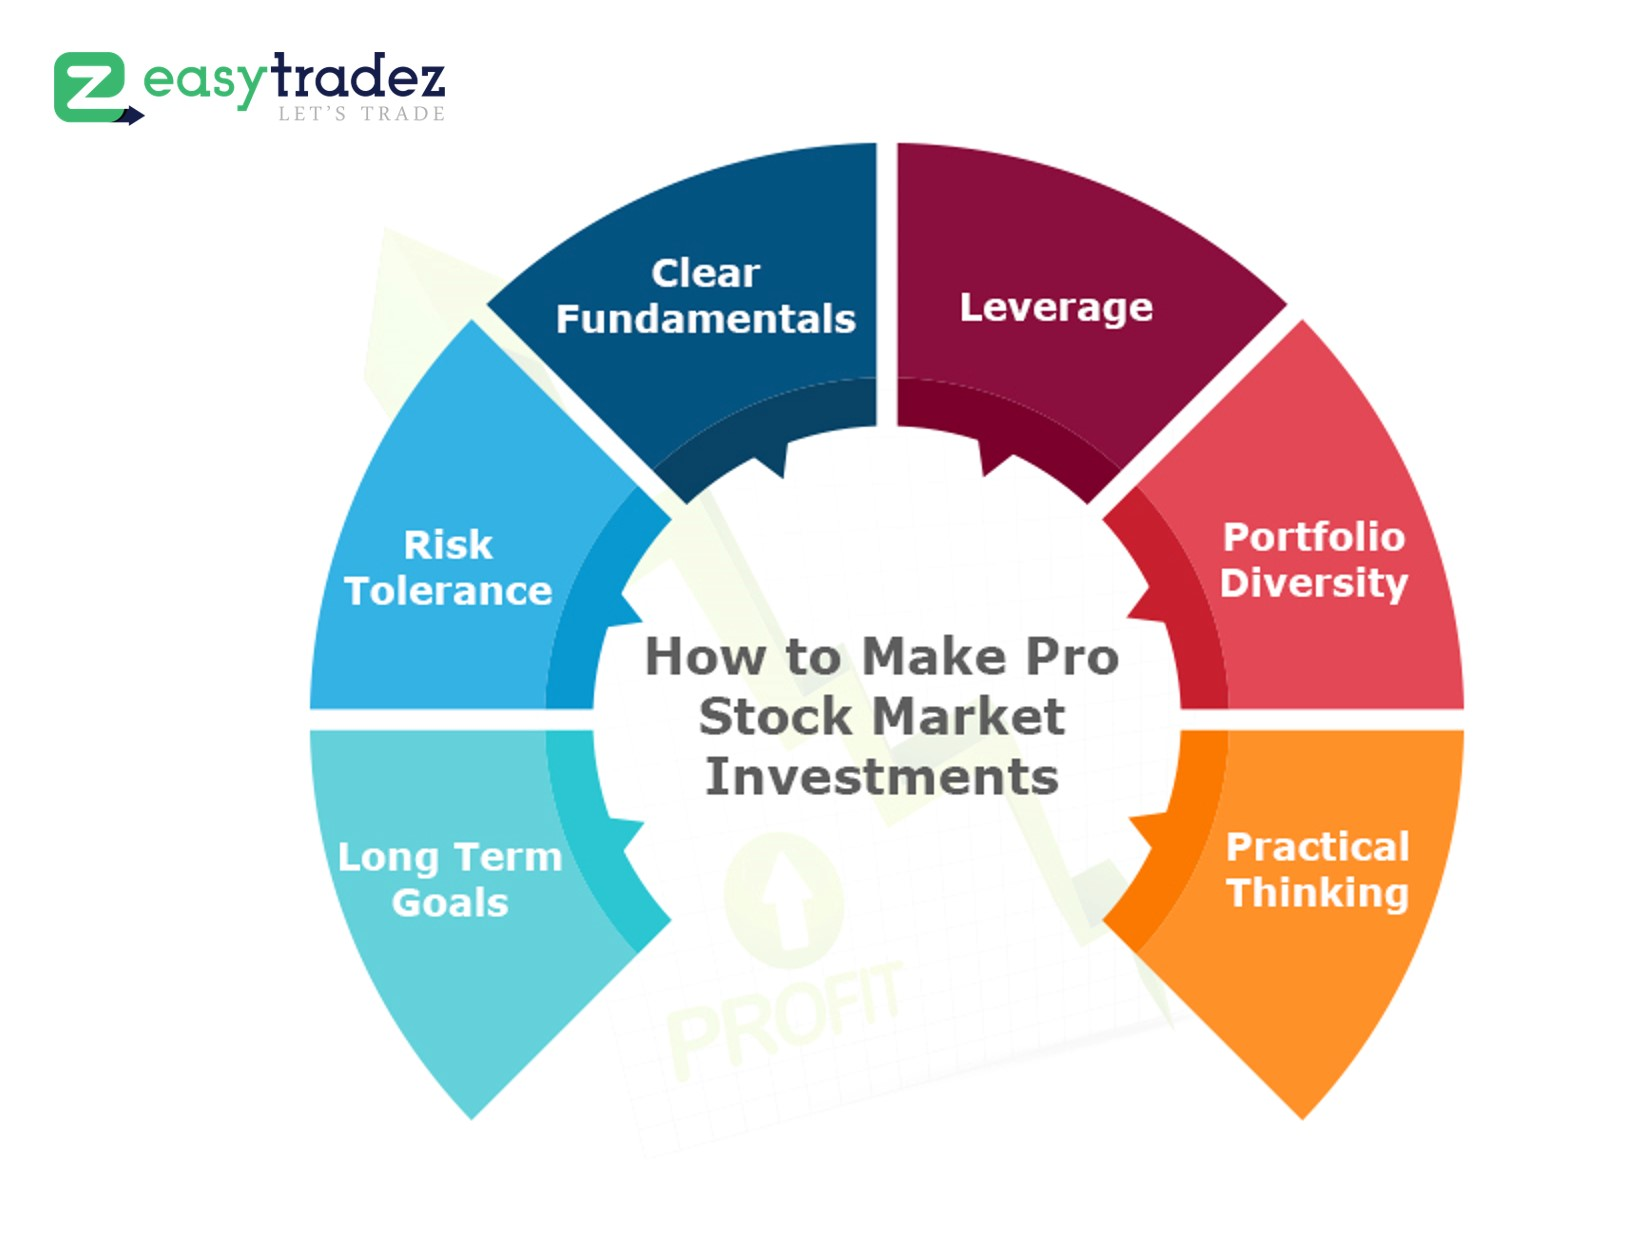 How to Make Pro Stock Market Investments